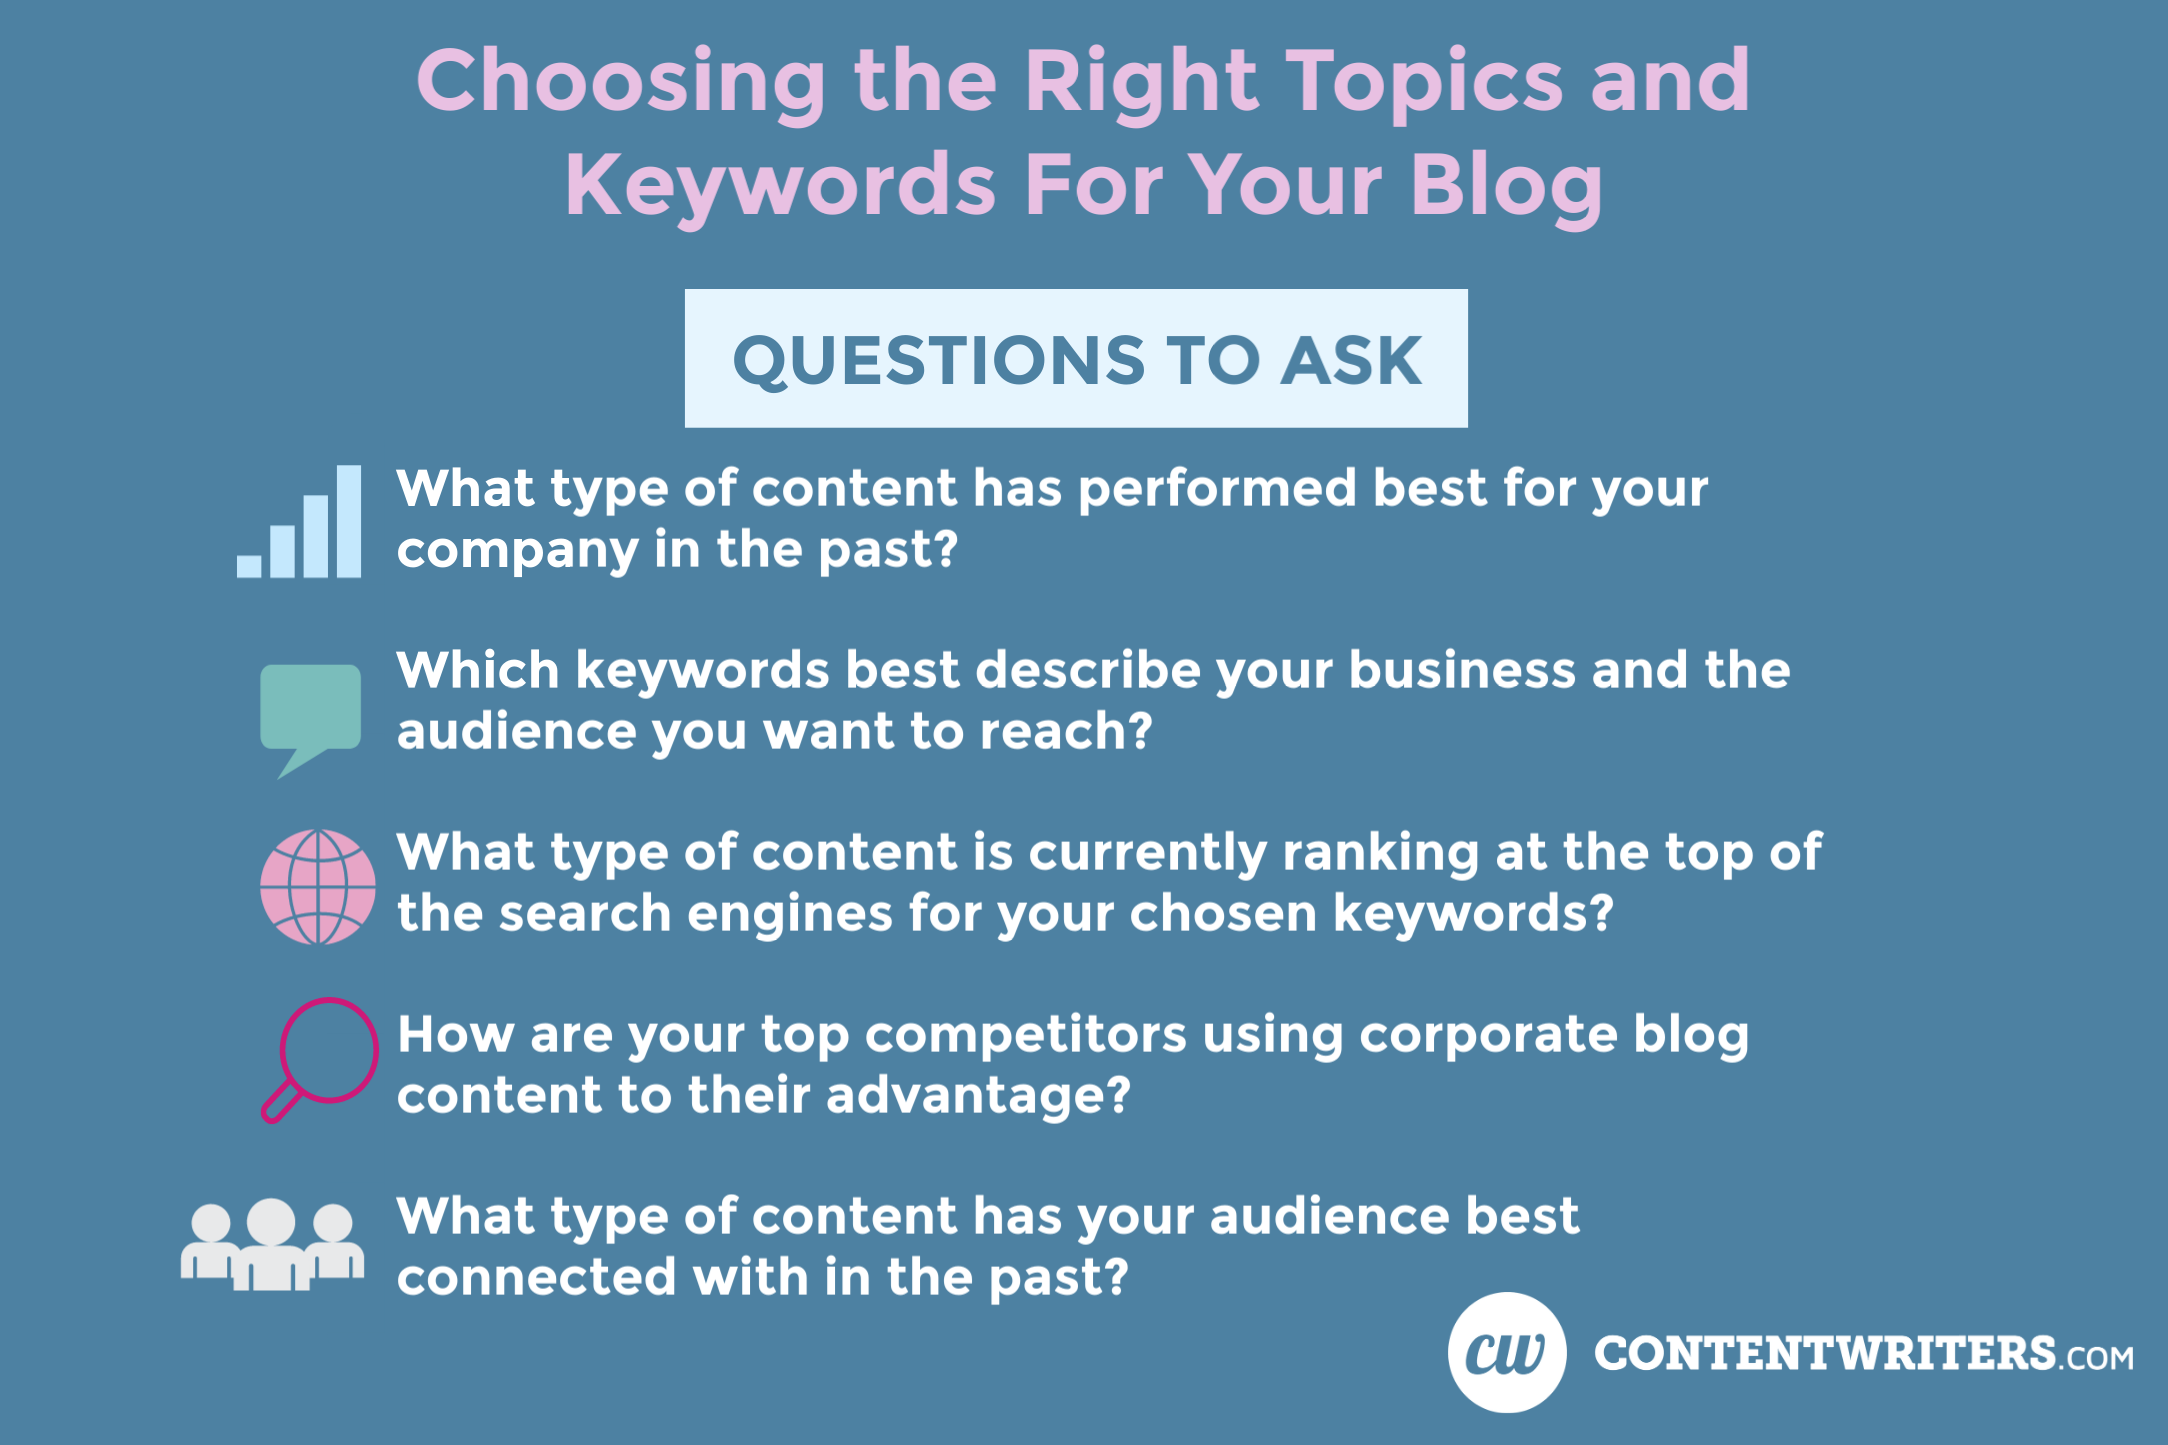 Choosing the Right Topics and Keywords For Your Blog